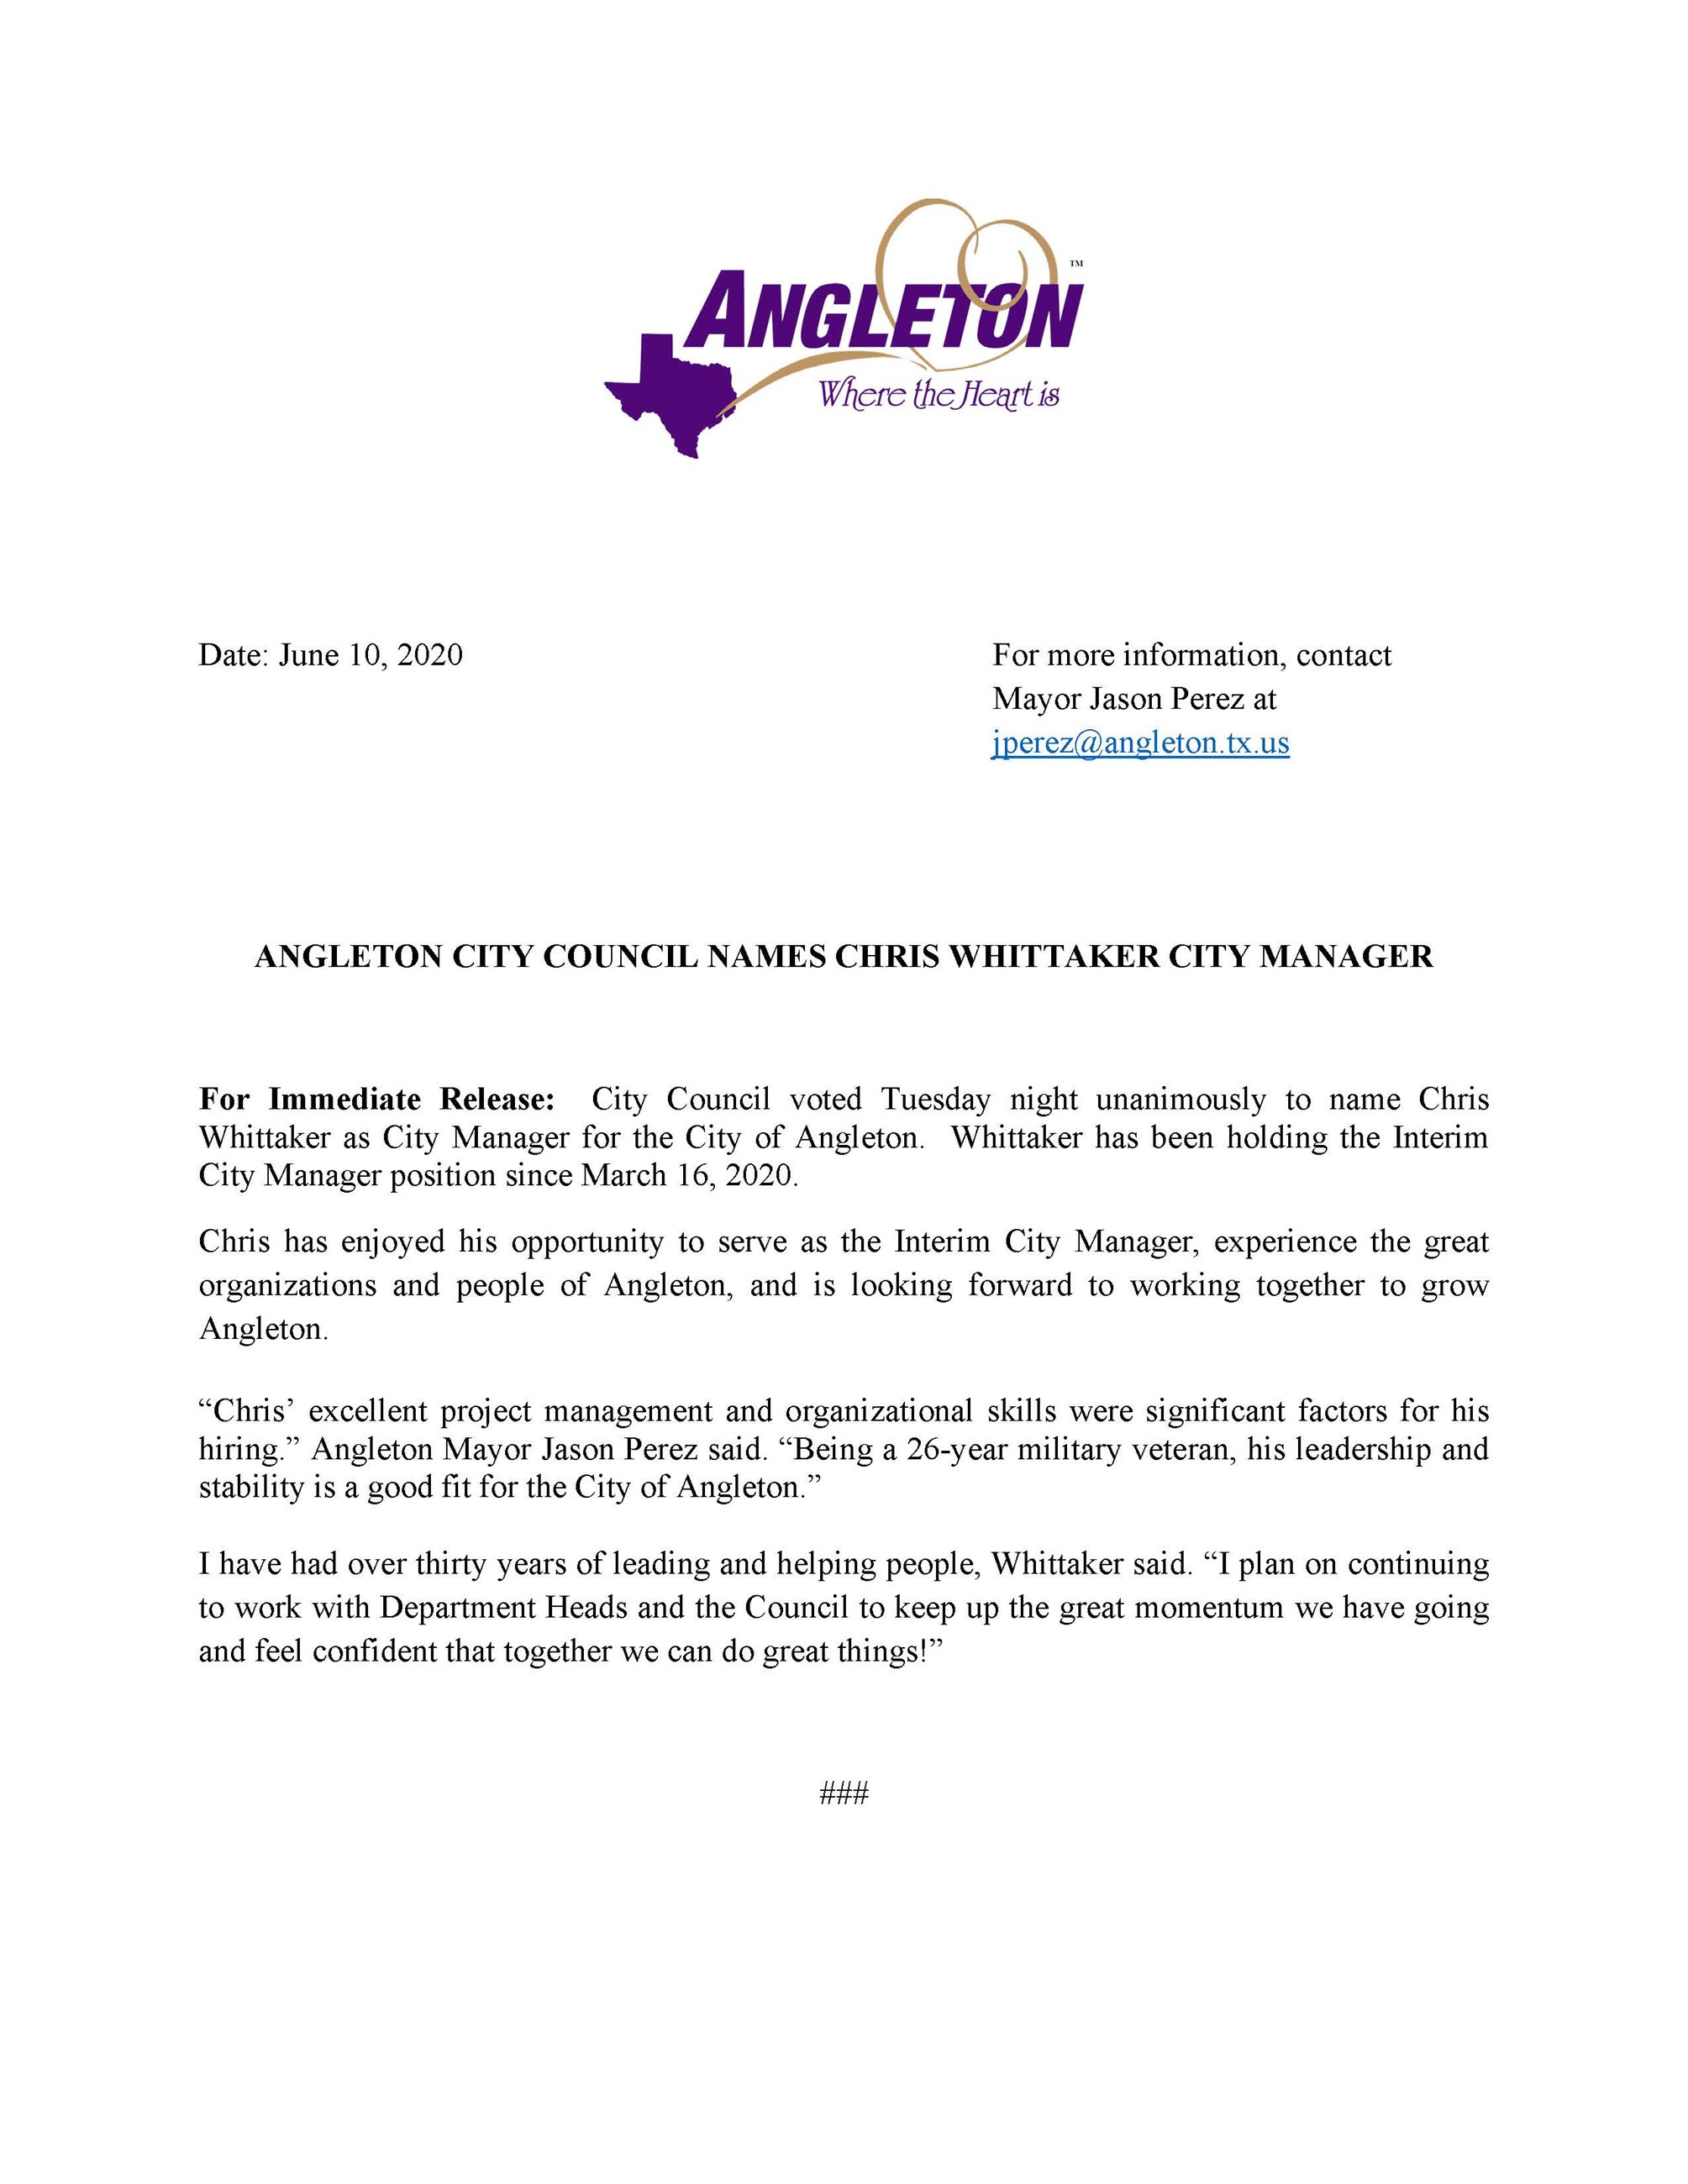 Press release on Chris Whittaker